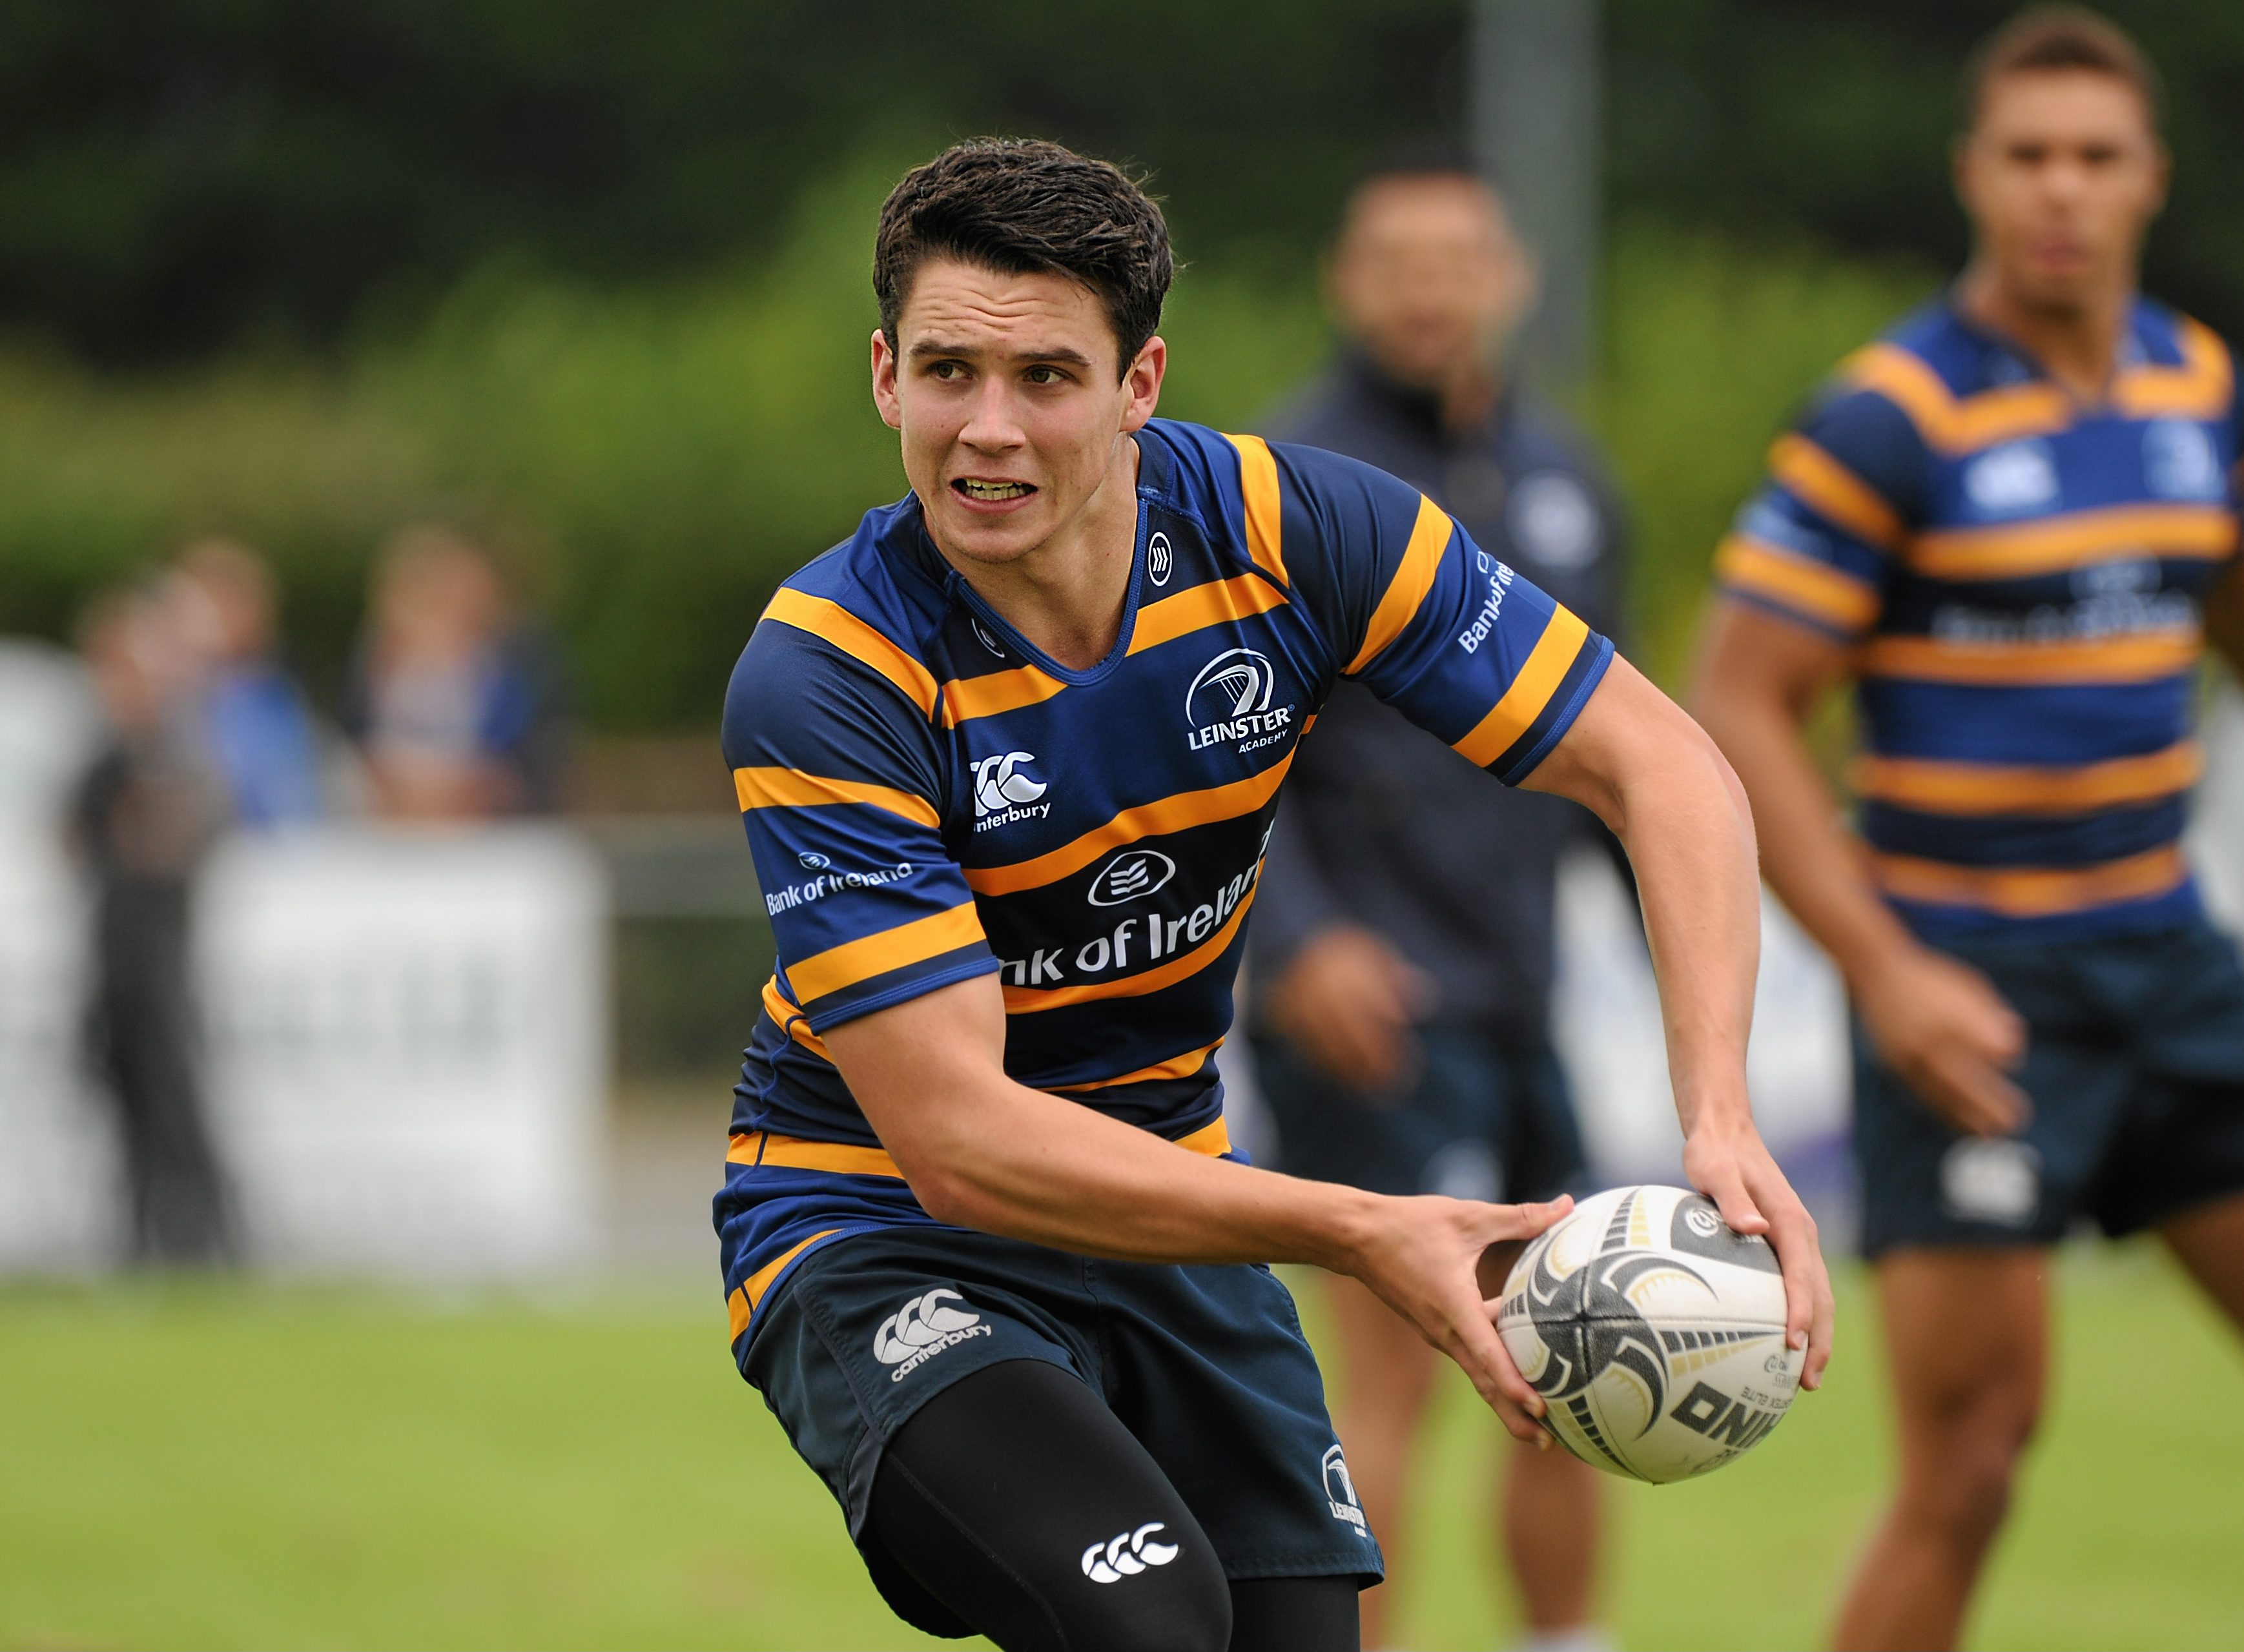 Wood 'loved' watching Carbery